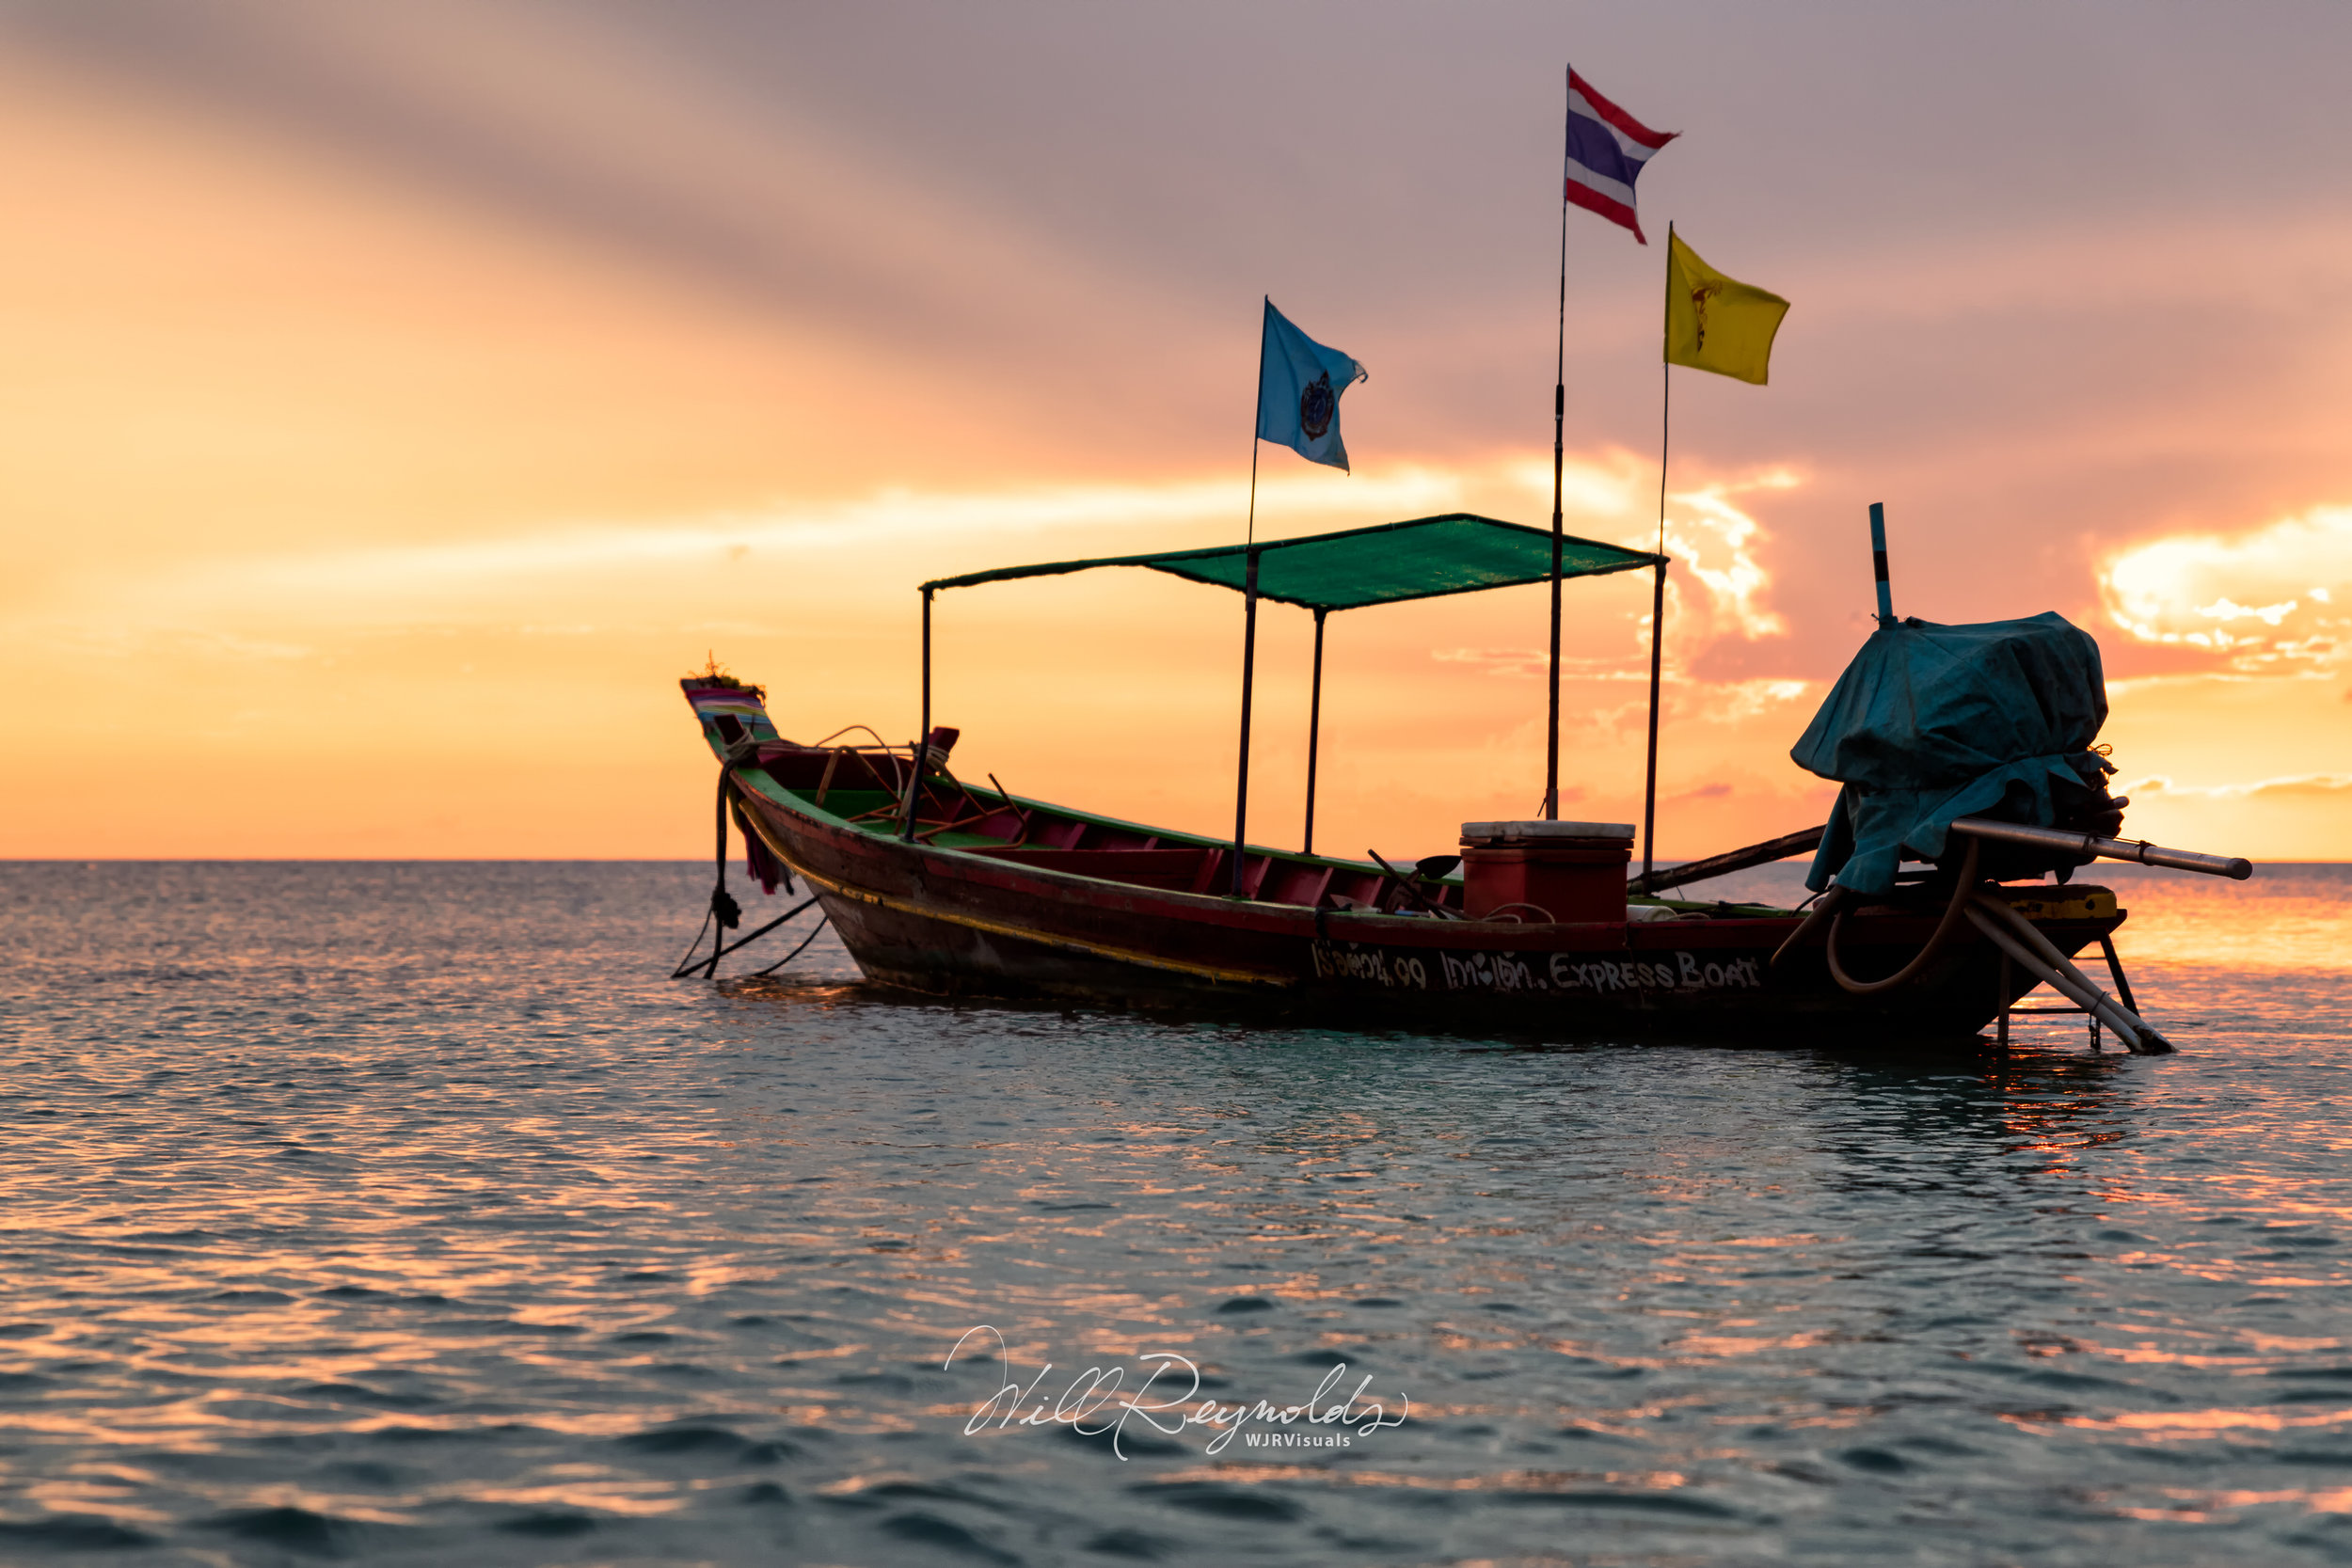 Long-tail boat on Koh Tao's Sairee Beach - Nikon D850 & Tamron 24-70mm f2.8 G2